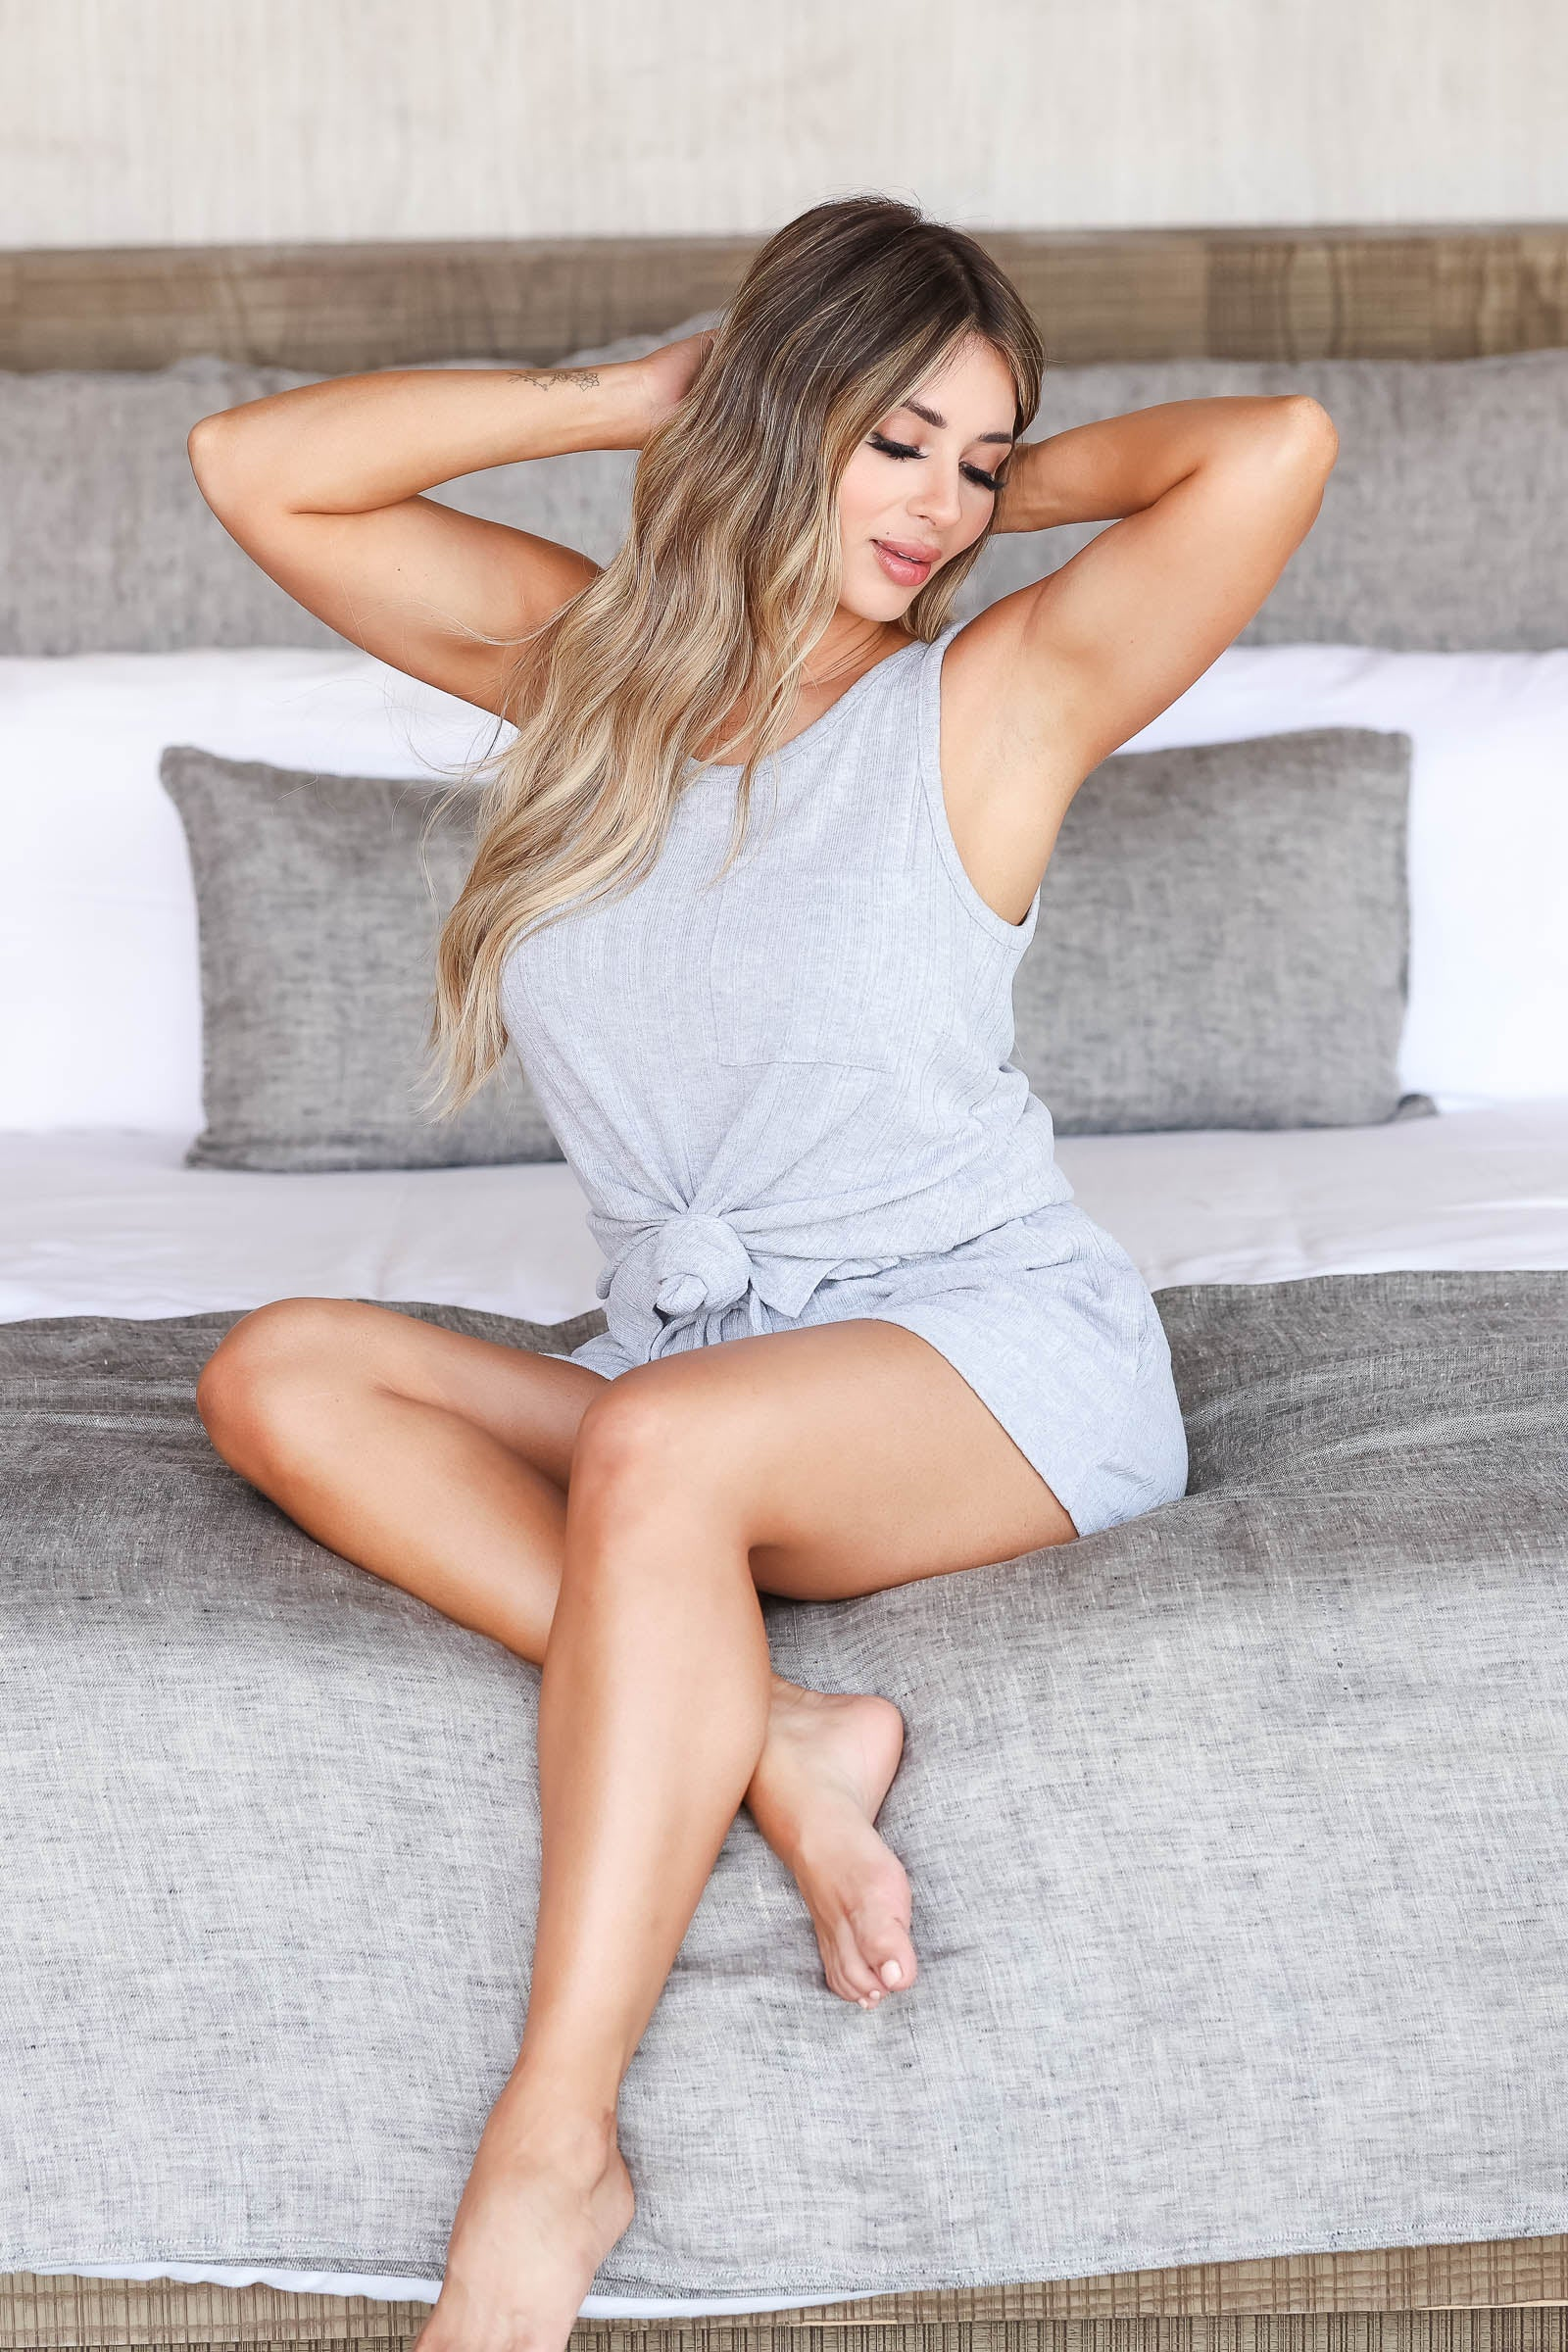 CBRAND Kickin' It Just For You Loungewear - Heather Grey closet candy women's trendy matching loungewear tank top and shorts sitting